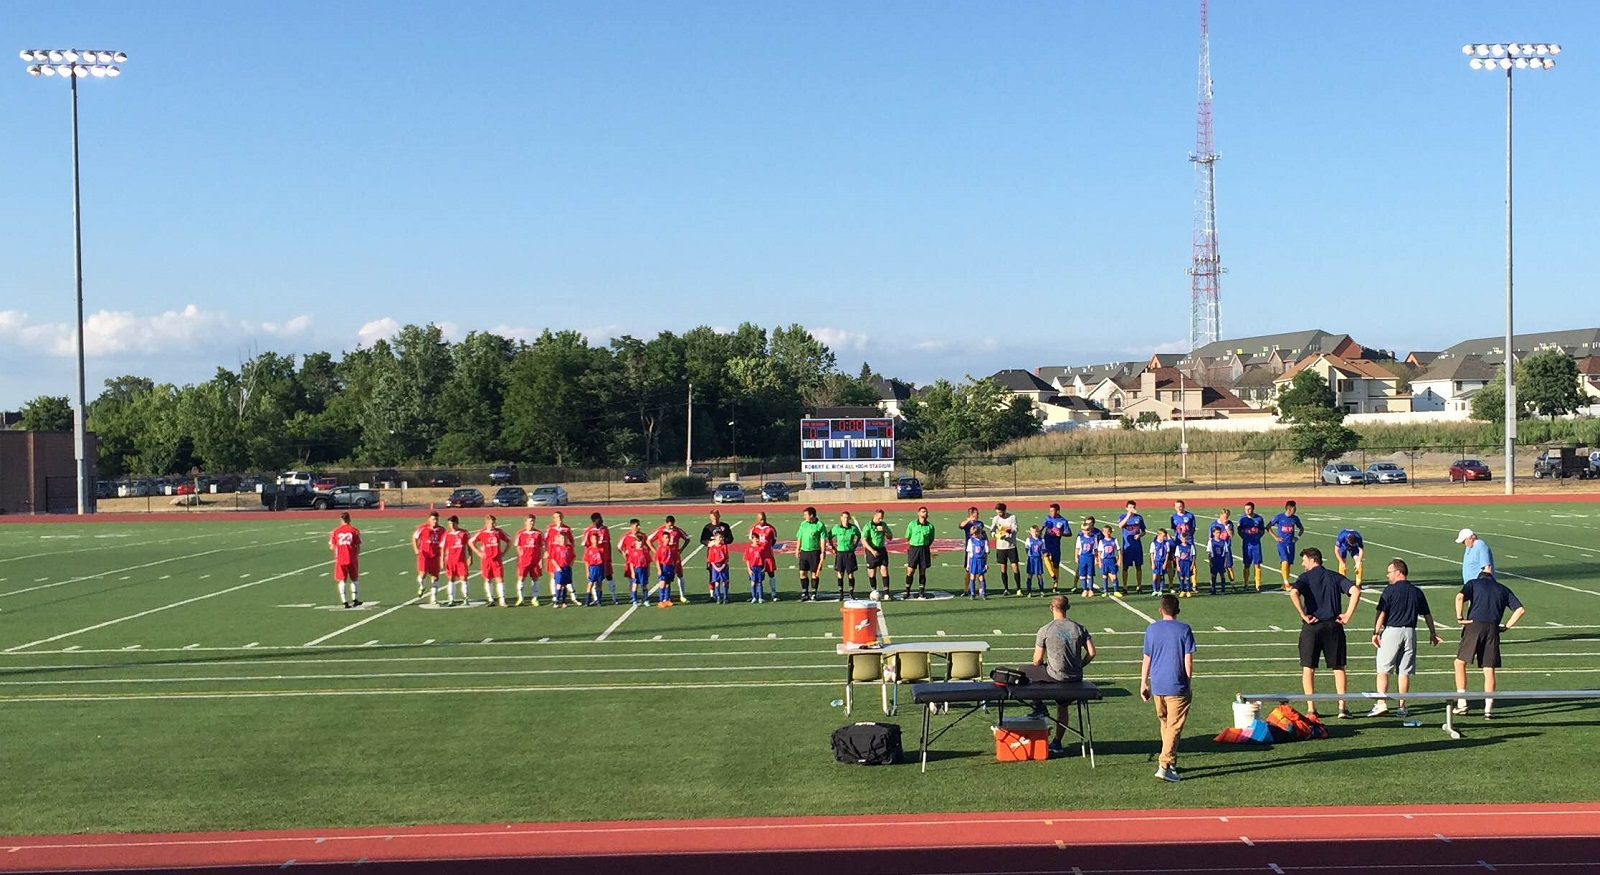 Indy Eleven NPSL, in red, and FC Buffalo line up before kickoff. (Ben Tsujimoto/Buffalo News)